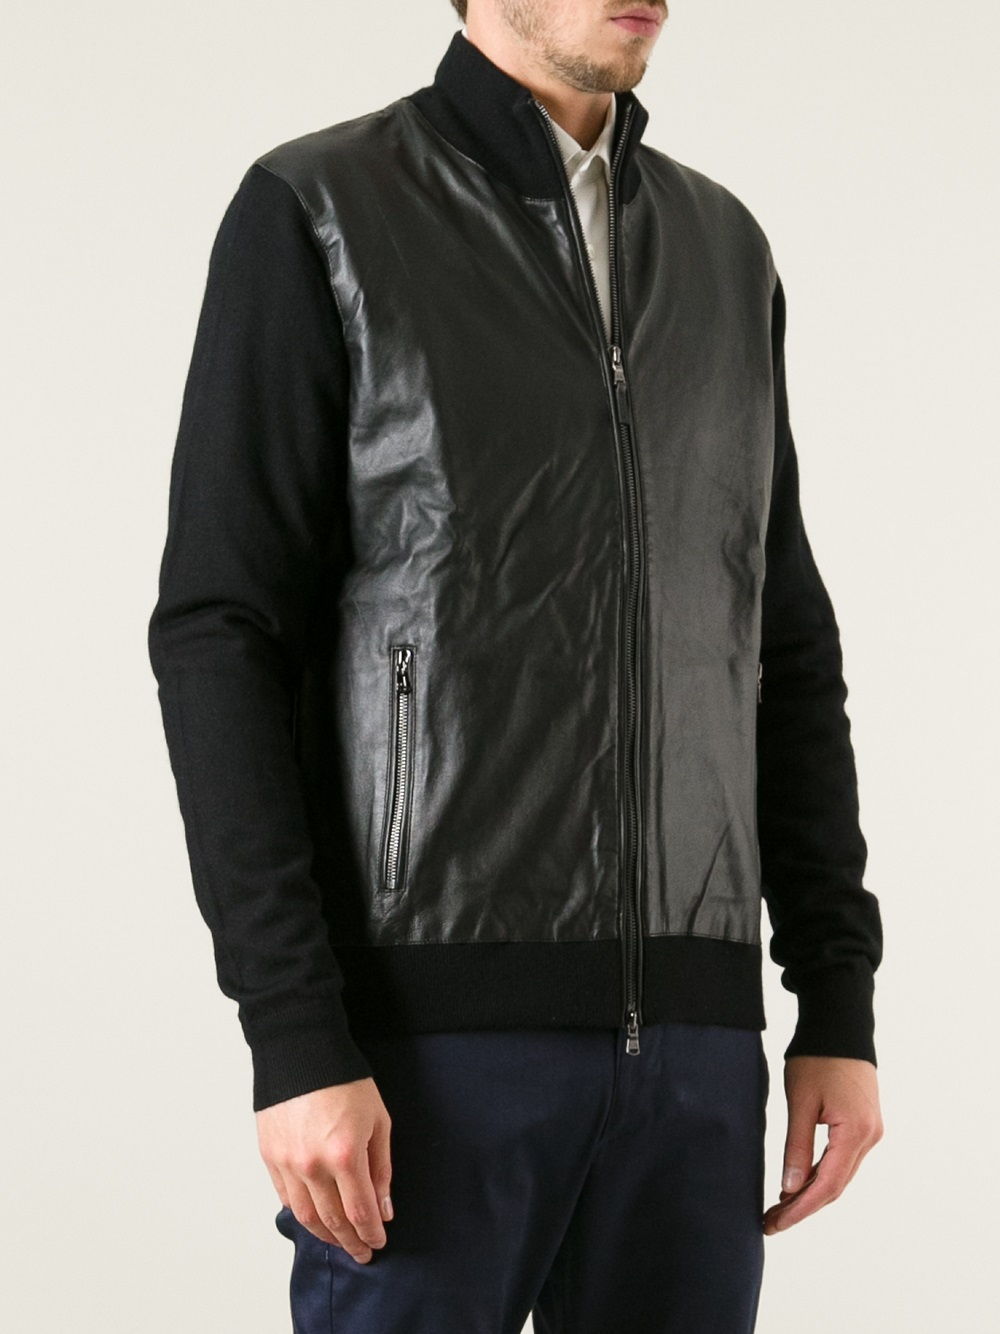 Michael Kors Leather Front Cardigan In Black For Men Lyst